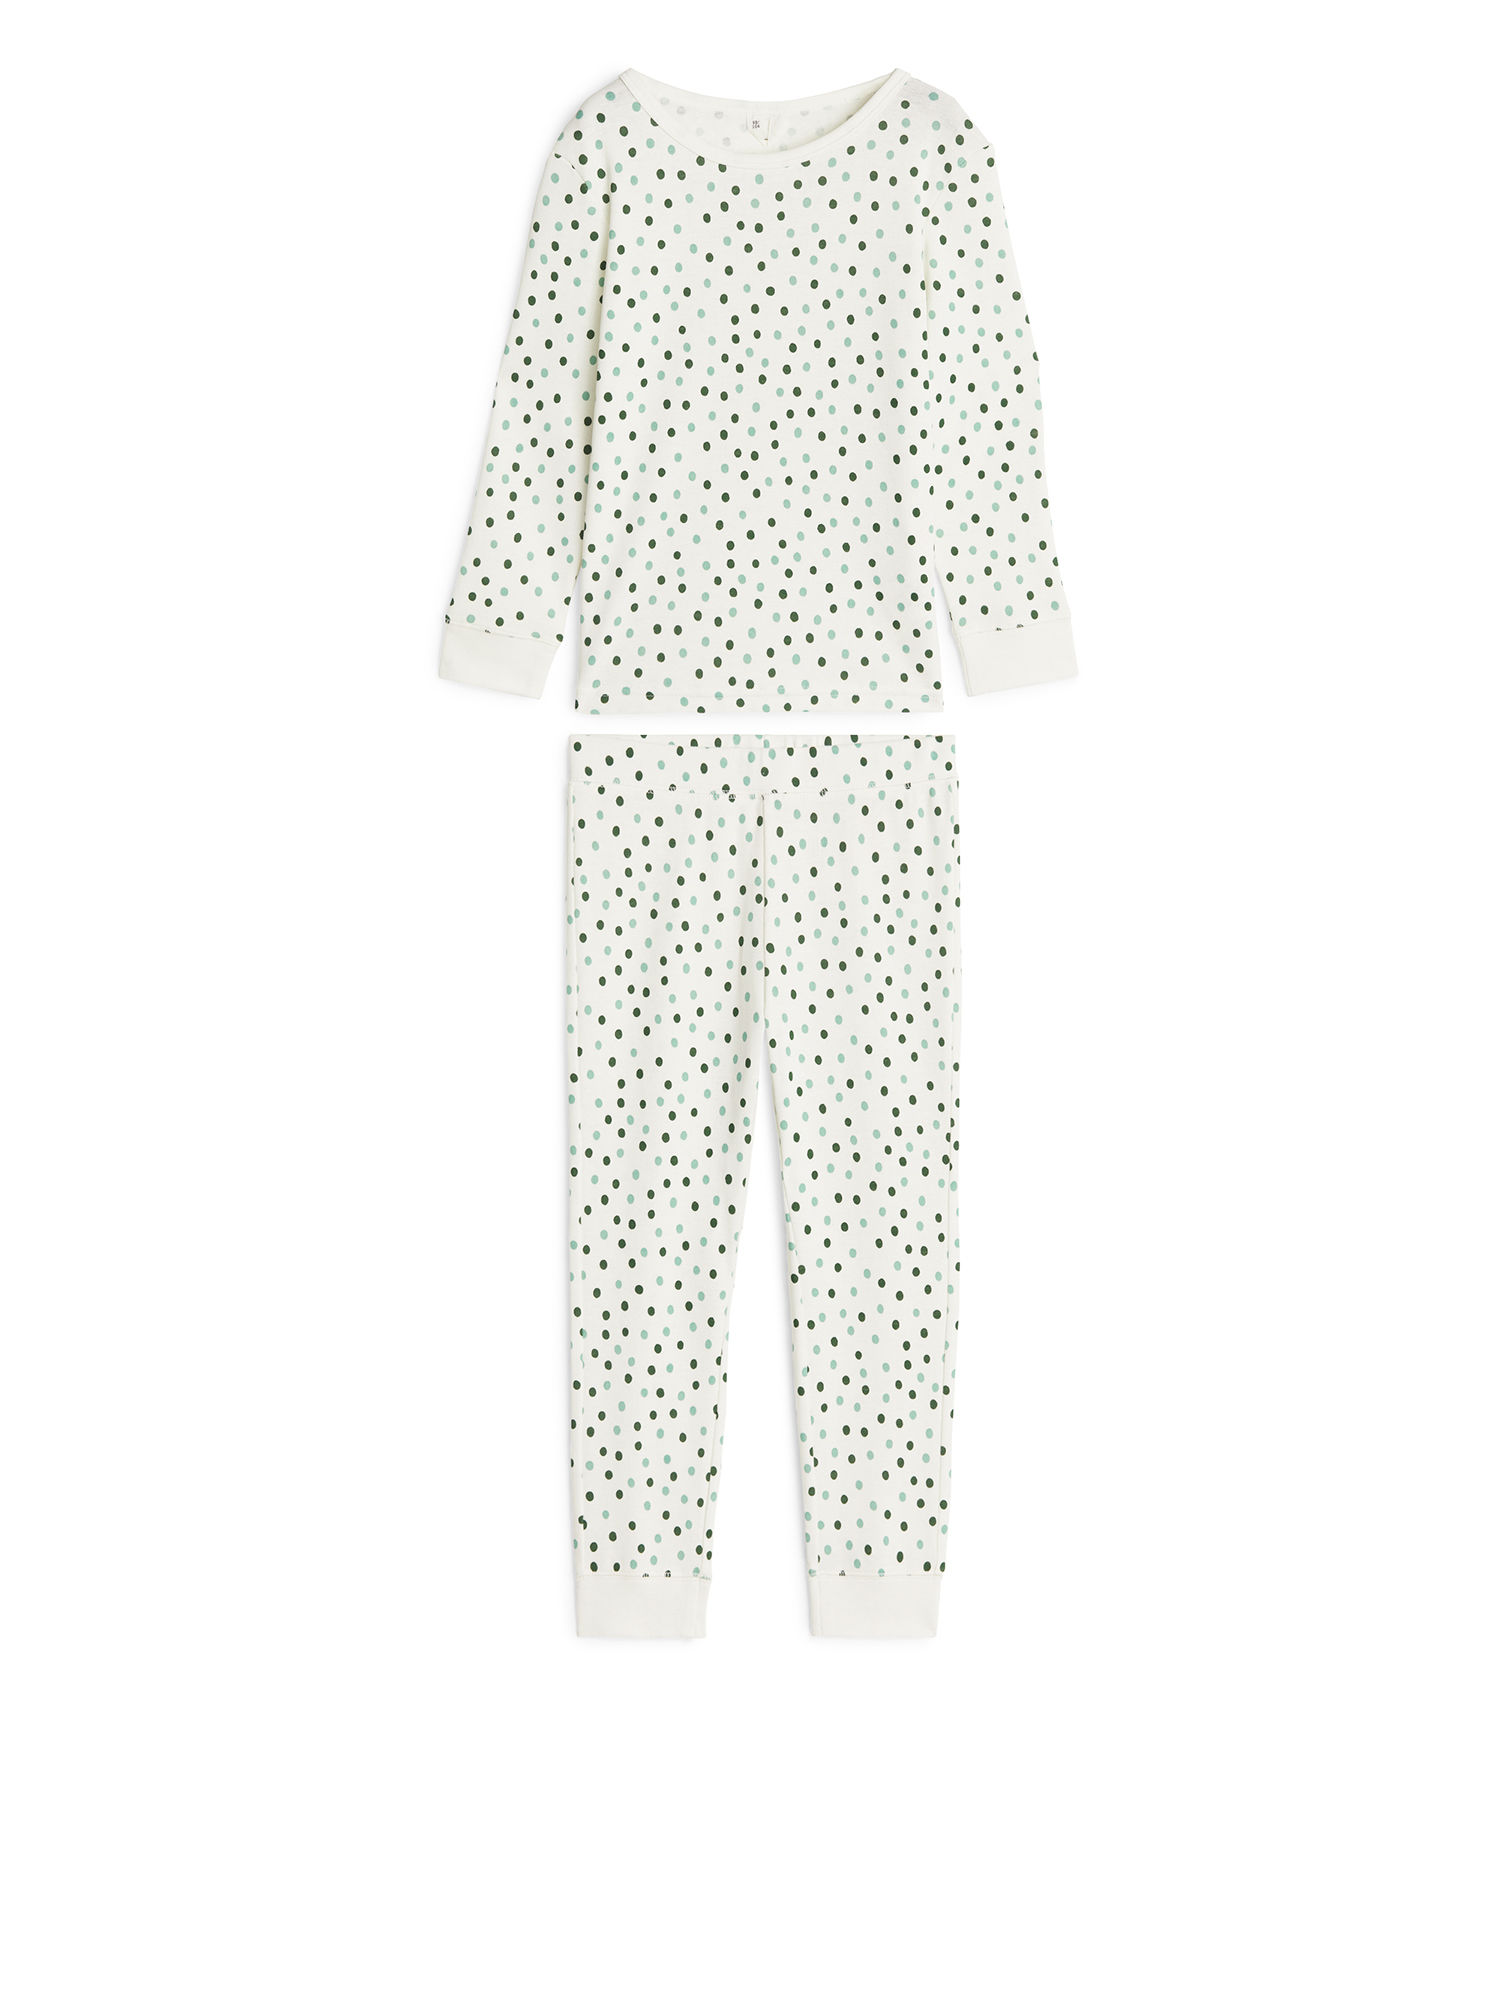 Fabric Swatch image of Arket cotton jersey pyjama set in white